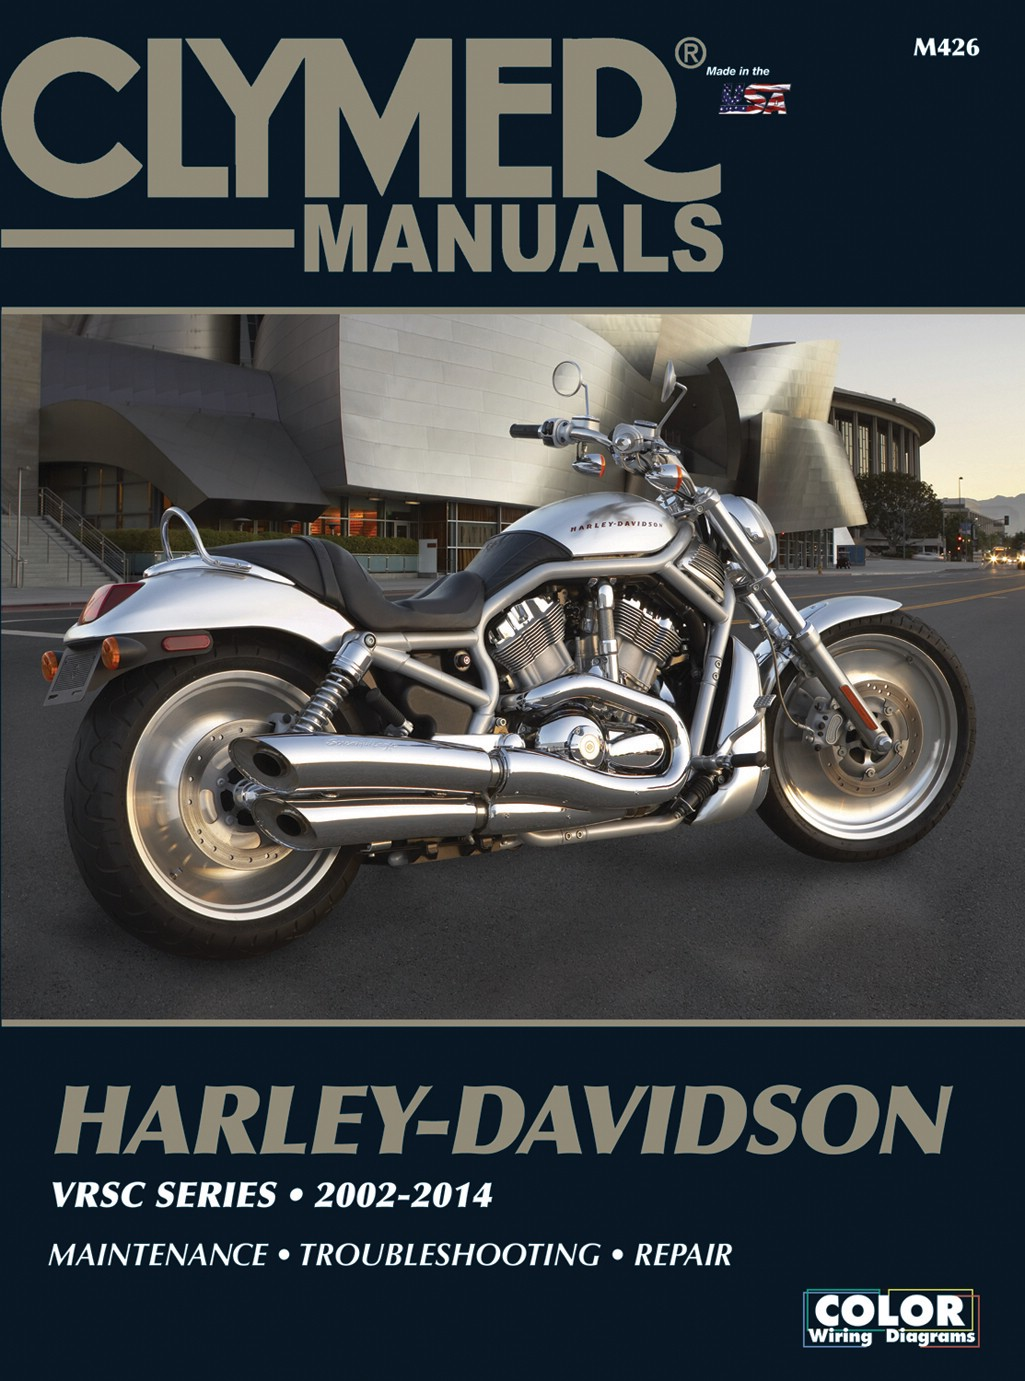 Harley Davidson Vrscb Service Manual 1975 Sportster Wiring Diagram Pdf 1130 V Rod 2004 2005 Manuals Clymer Each Rh Ebay Co Uk Maintenance